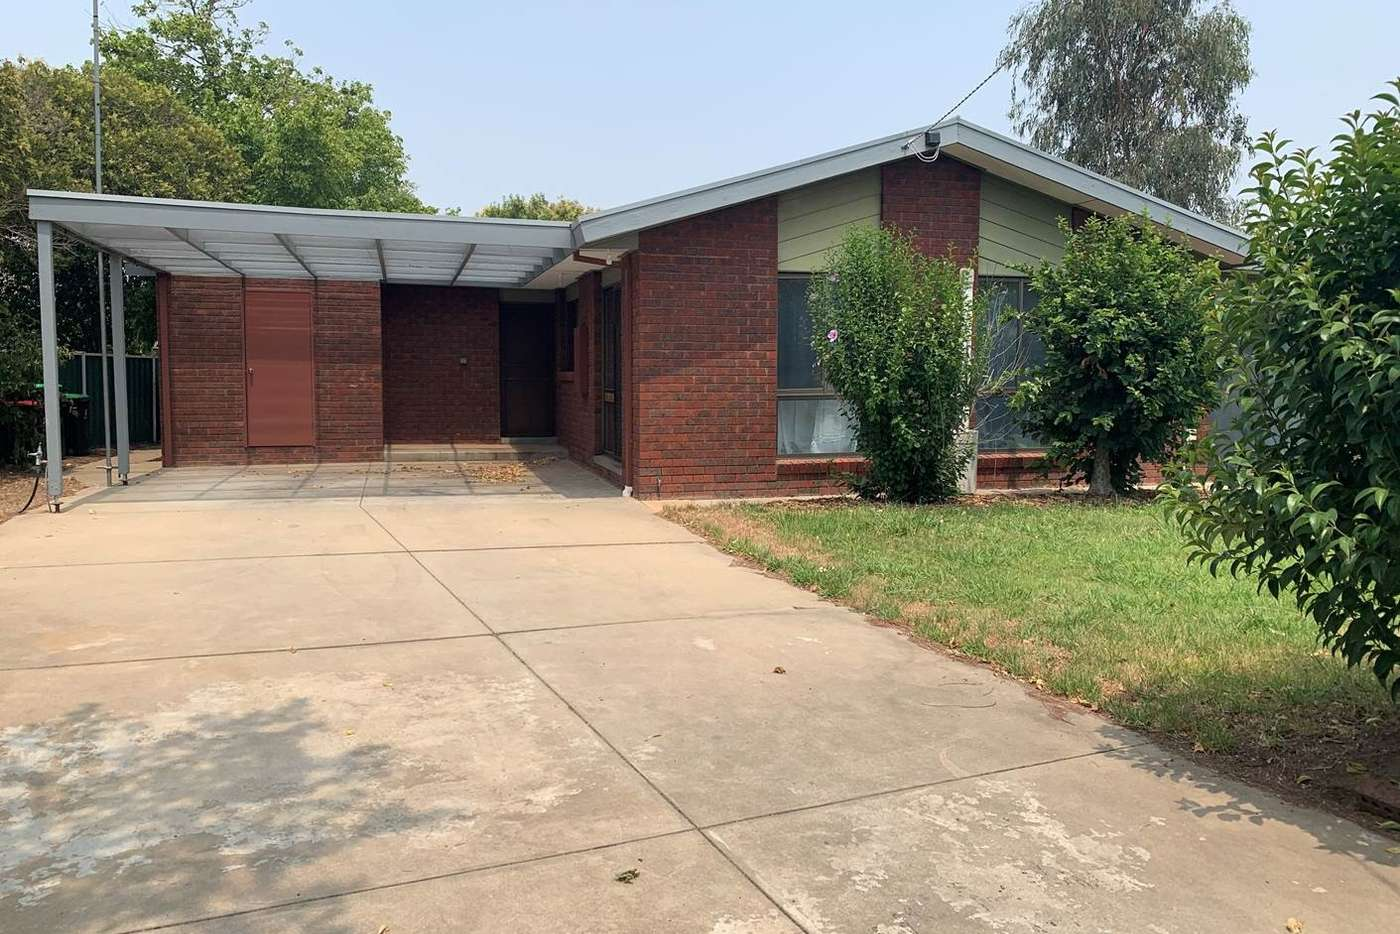 Main view of Homely house listing, 3 Fairless  Street, Shepparton VIC 3630